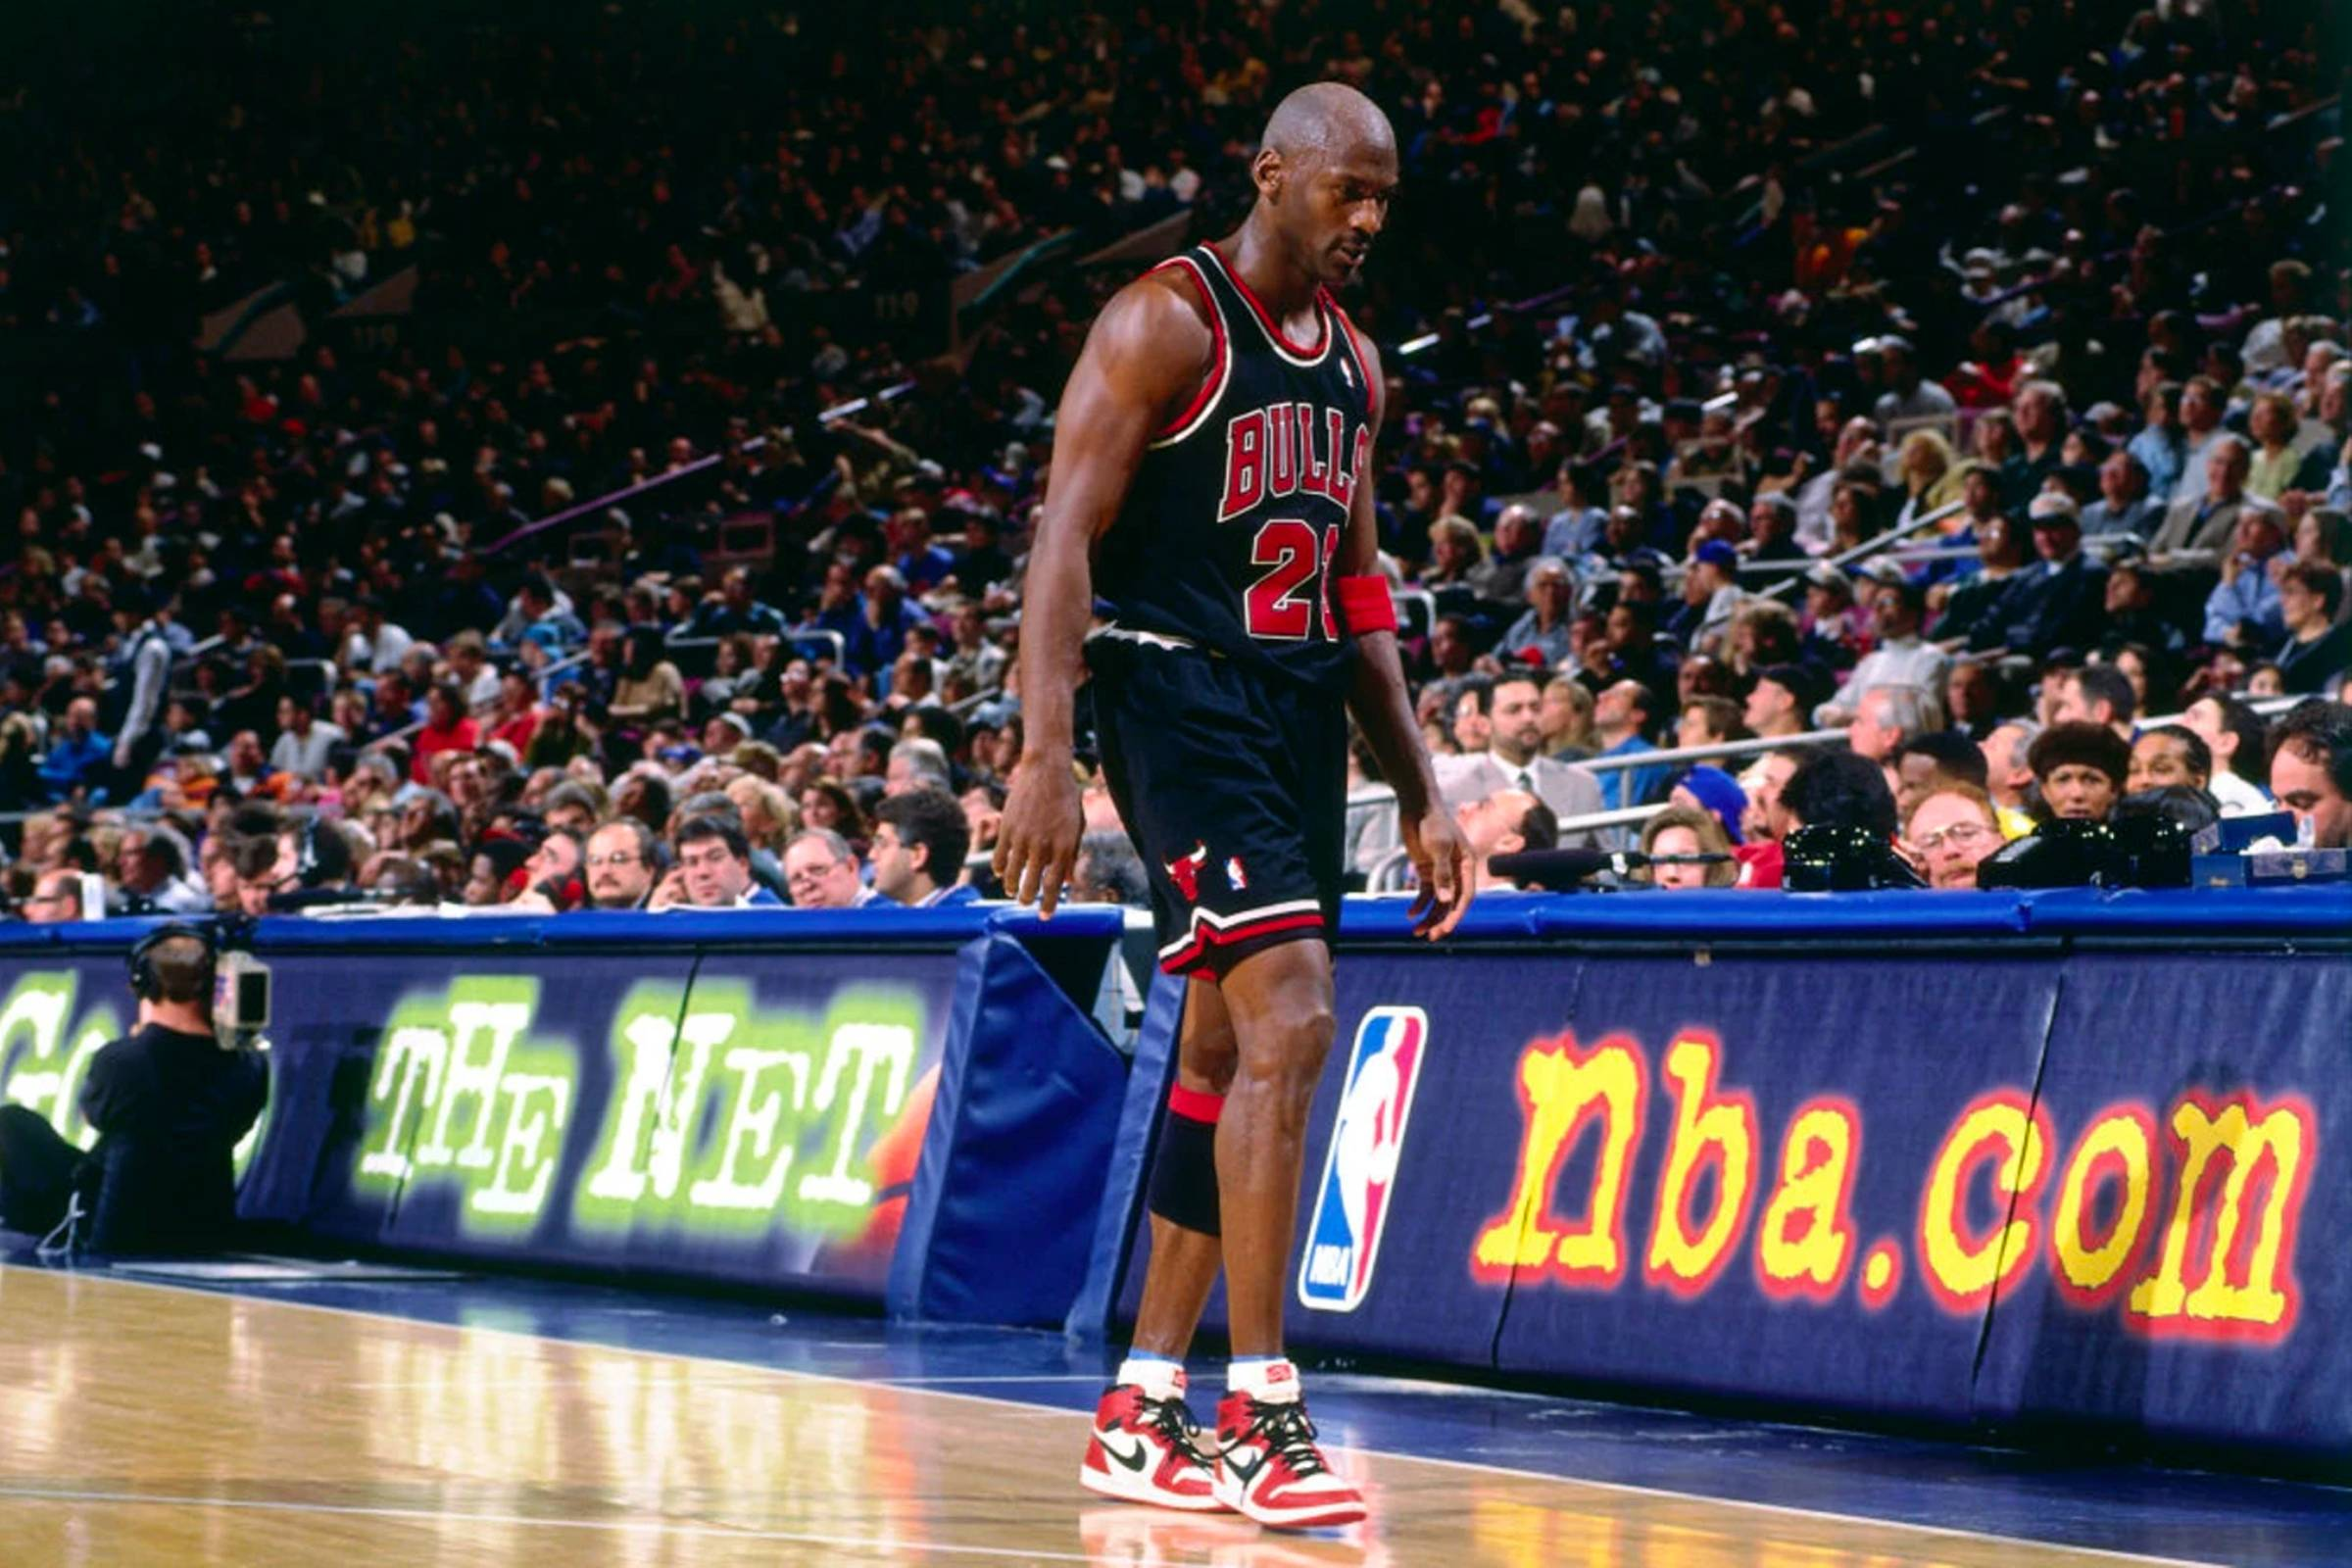 March 8, 1998, Chicago Bulls vs. New York Knicks